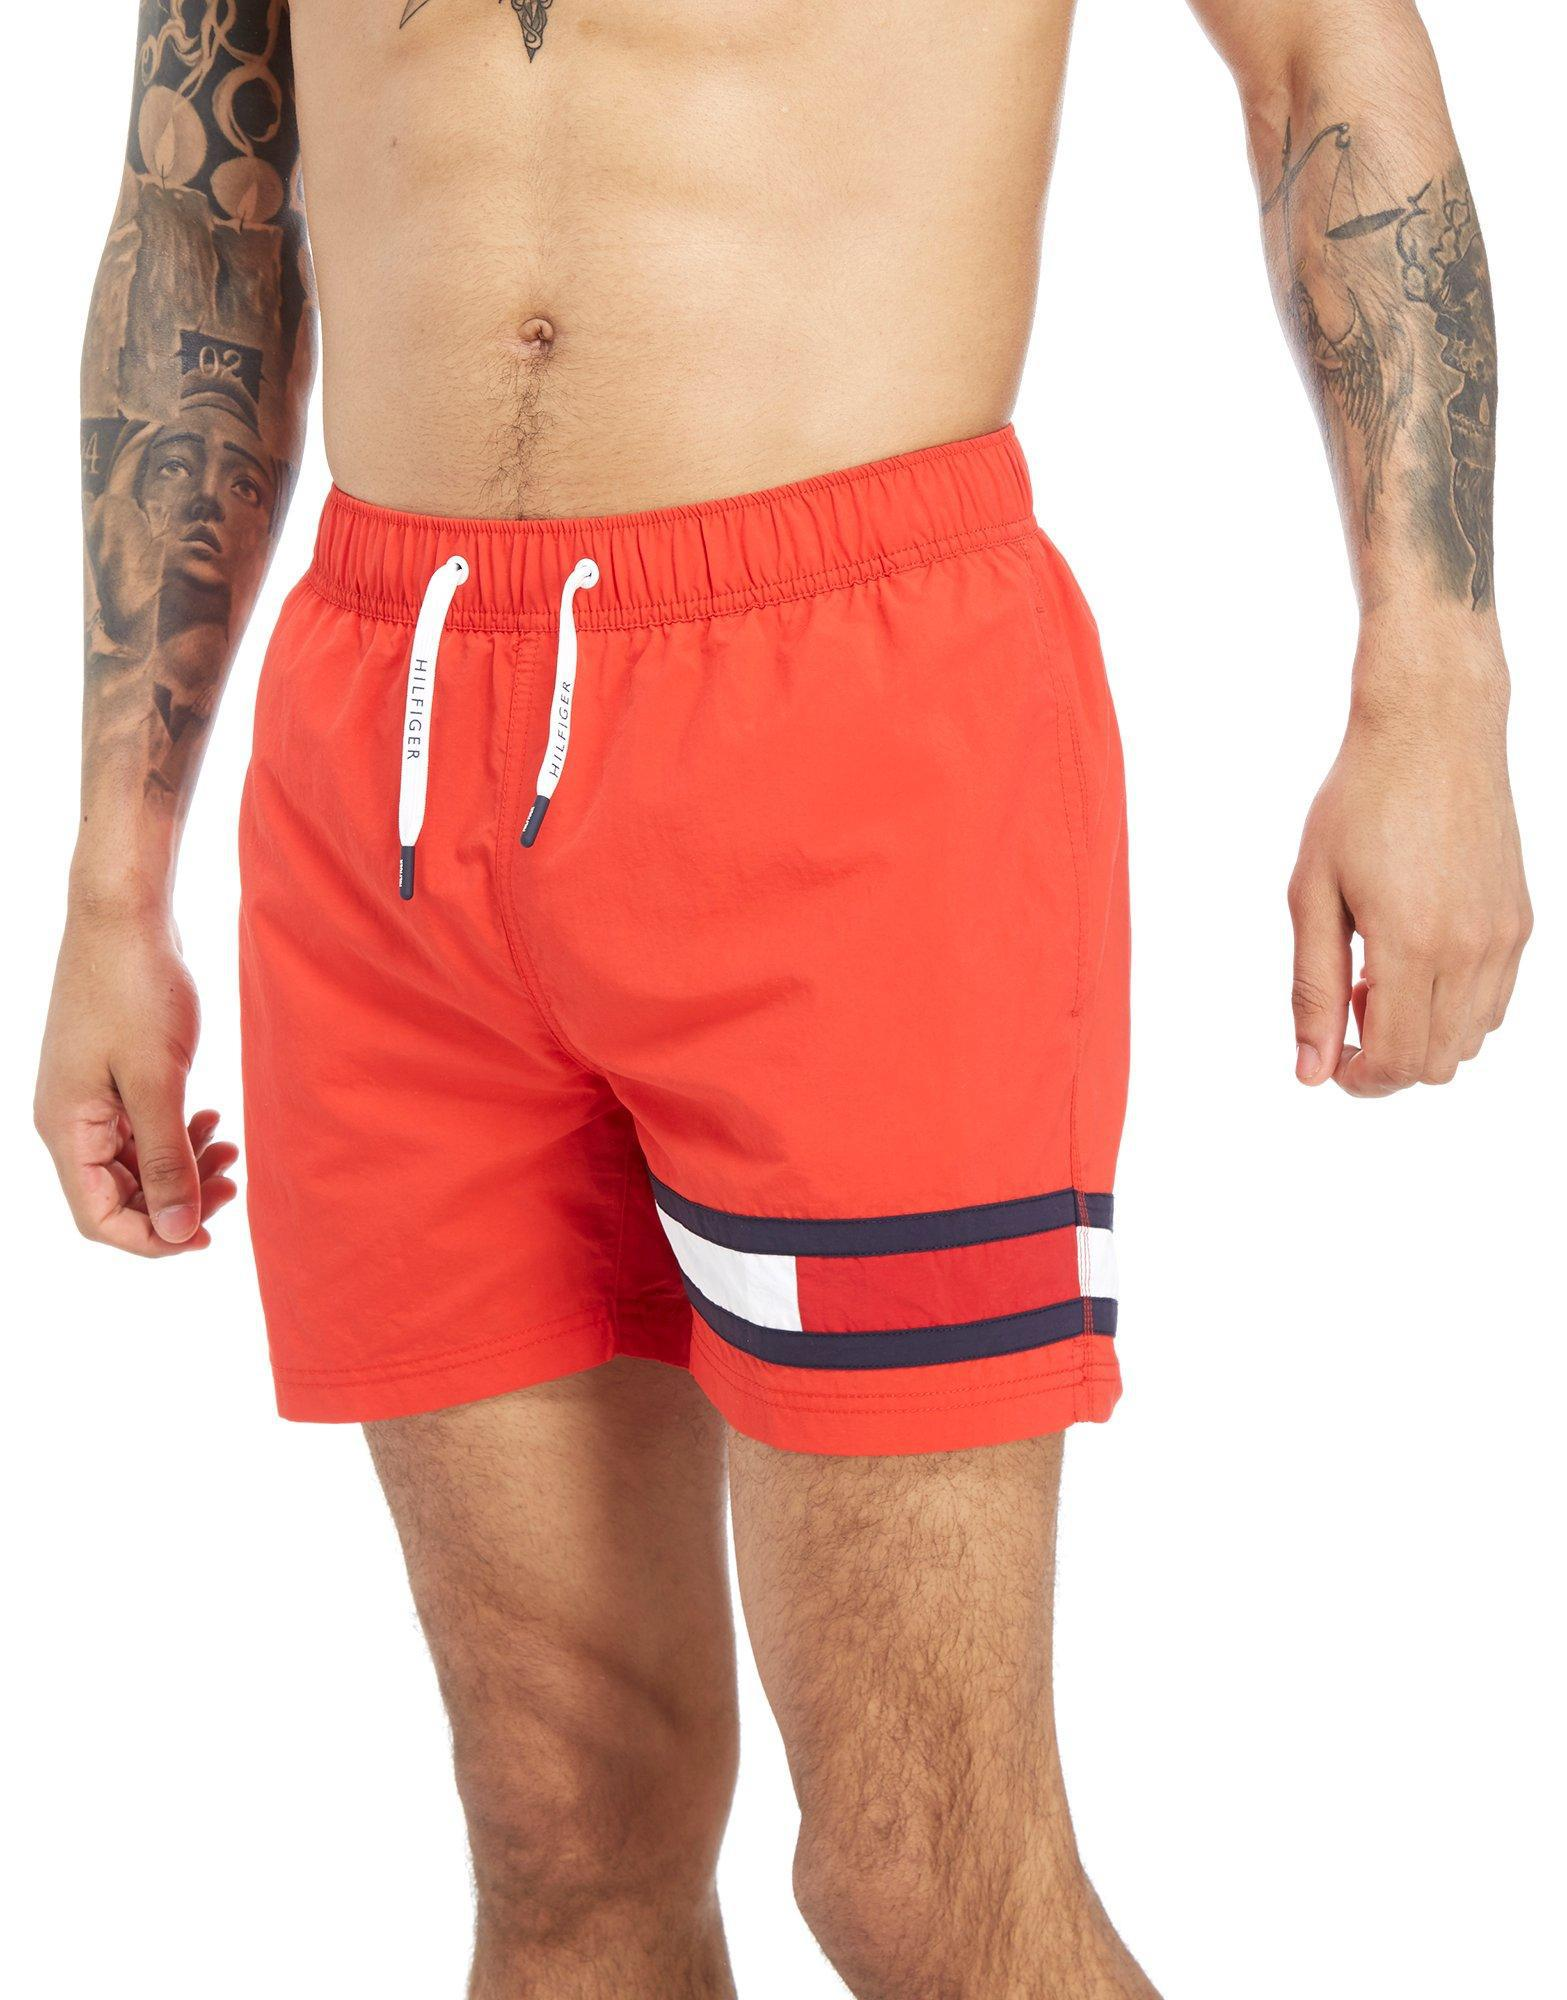 aeaf65aa3bdcbc Tommy Hilfiger Leg Flag Swim Shorts in Red for Men - Save ...